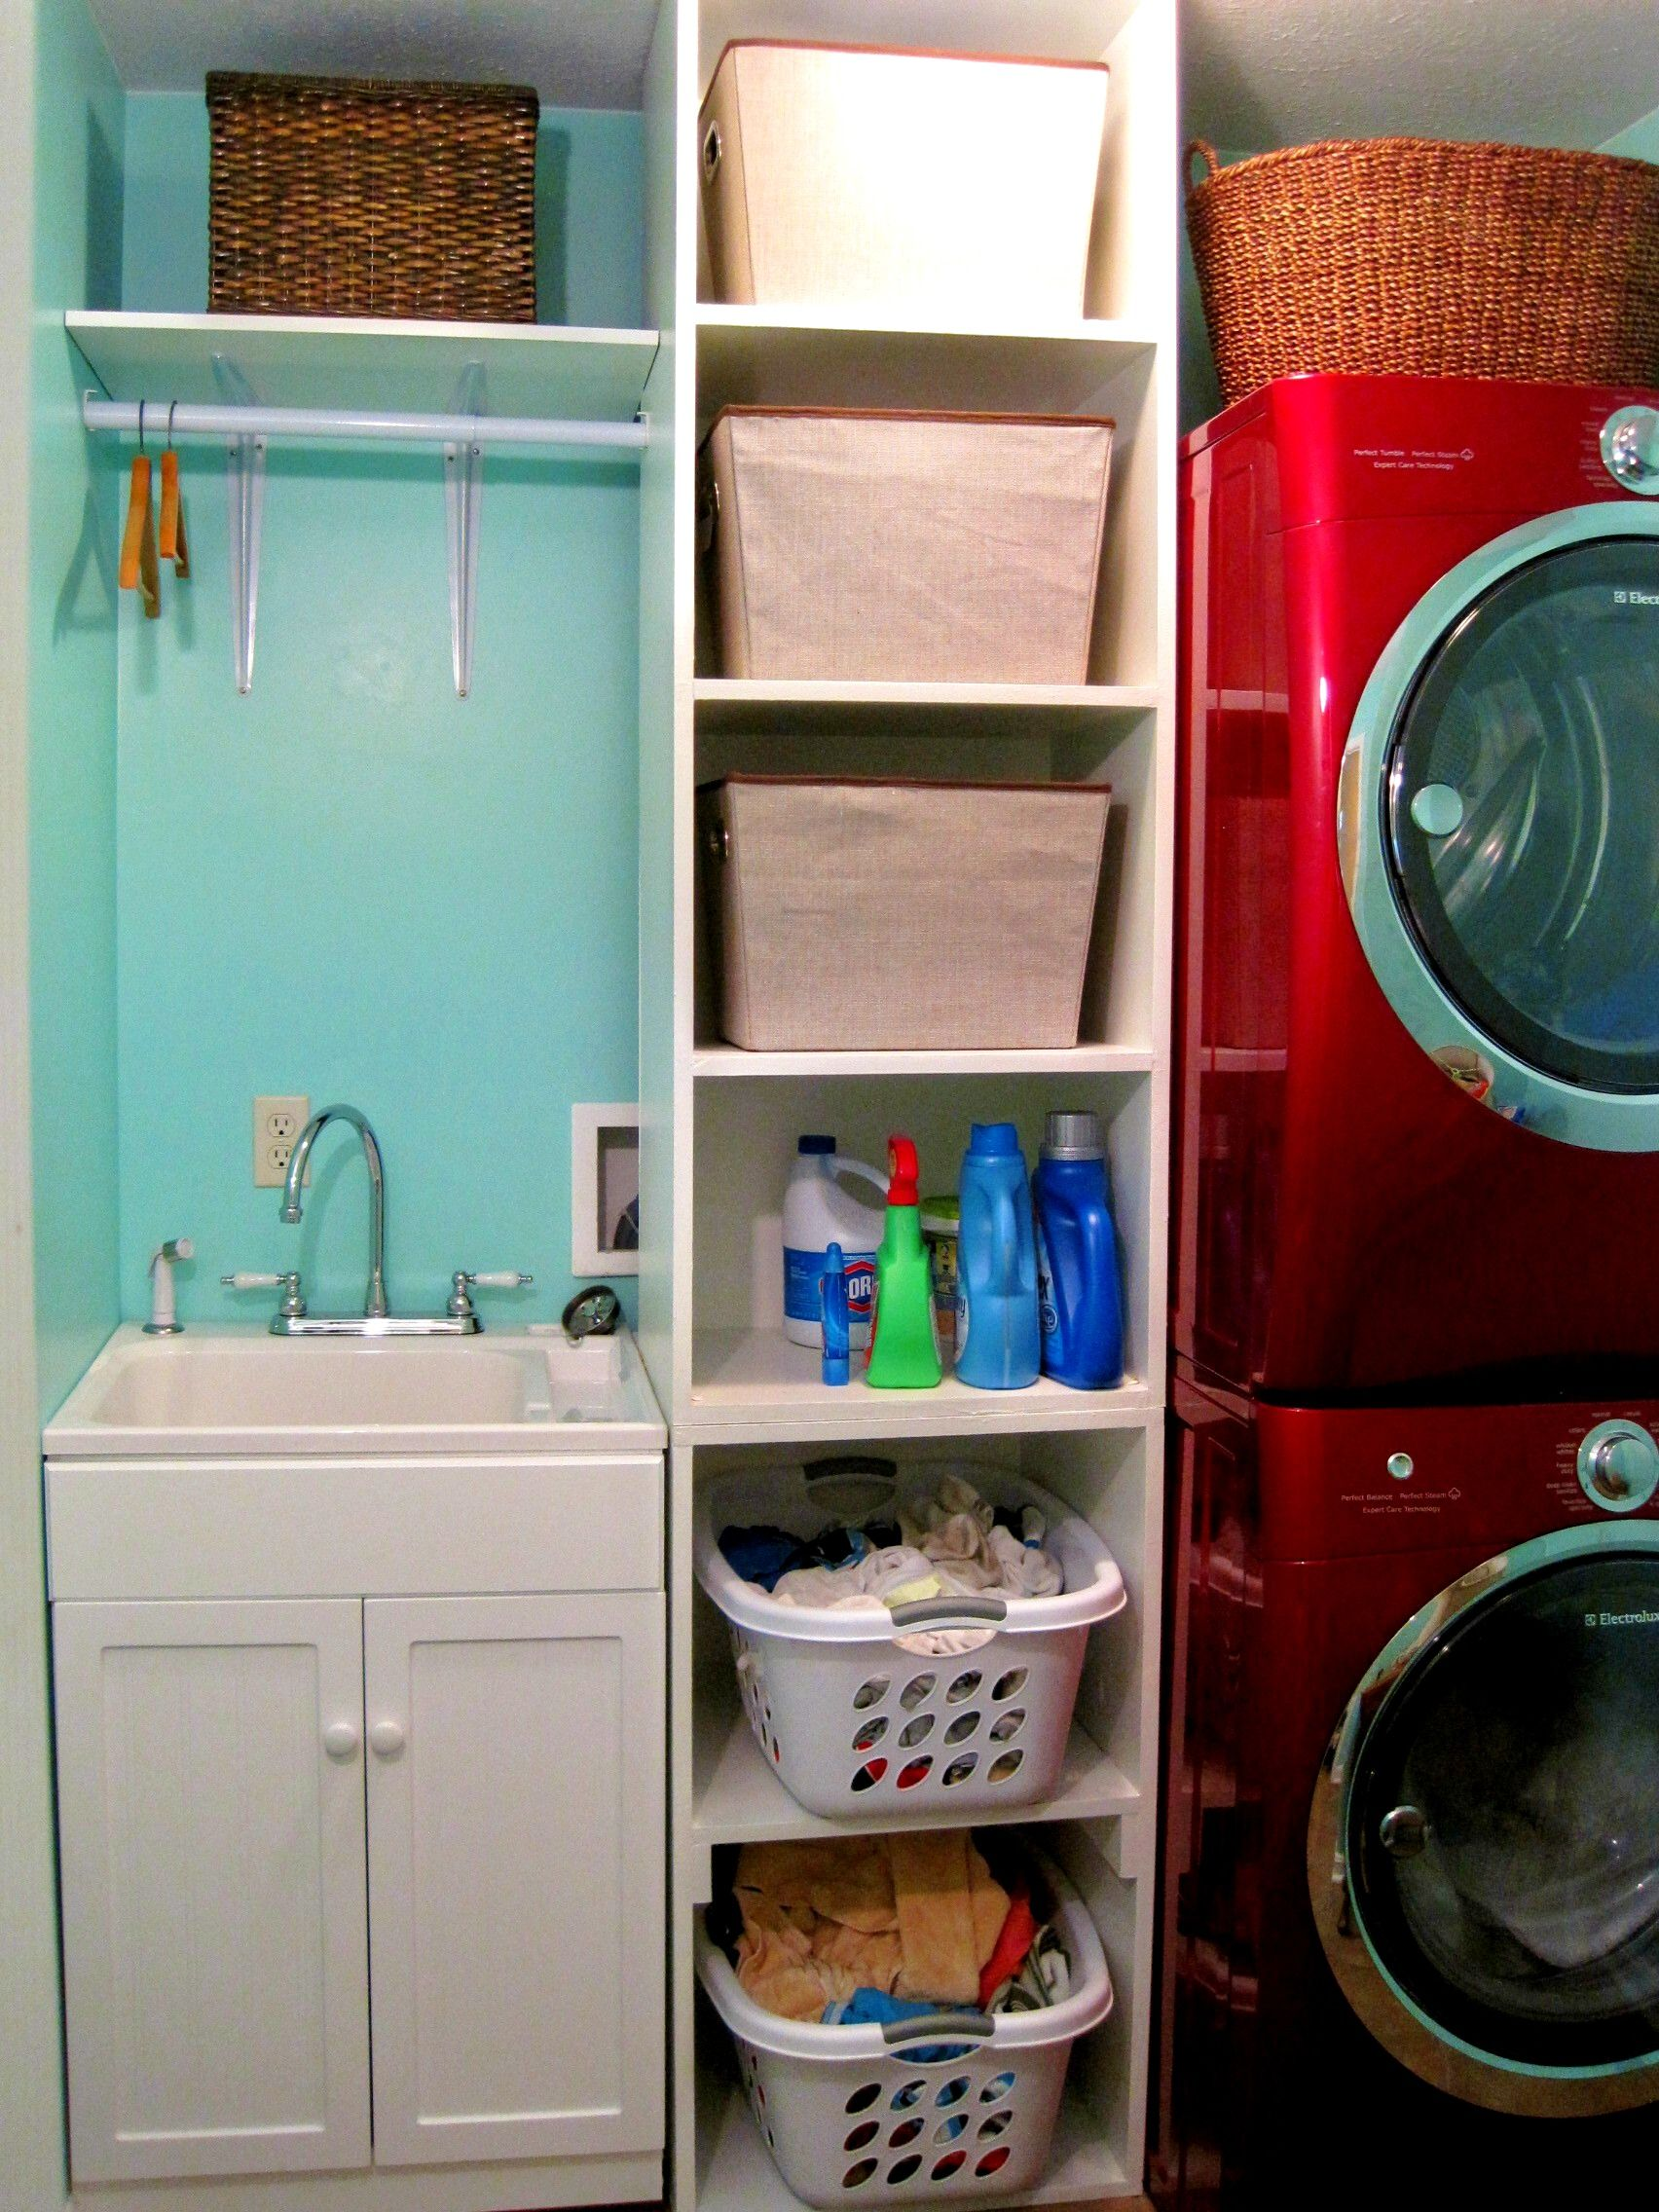 room with can pin doing laundry tiresome these work tasks utility the storage be everyday so life ideas make simple